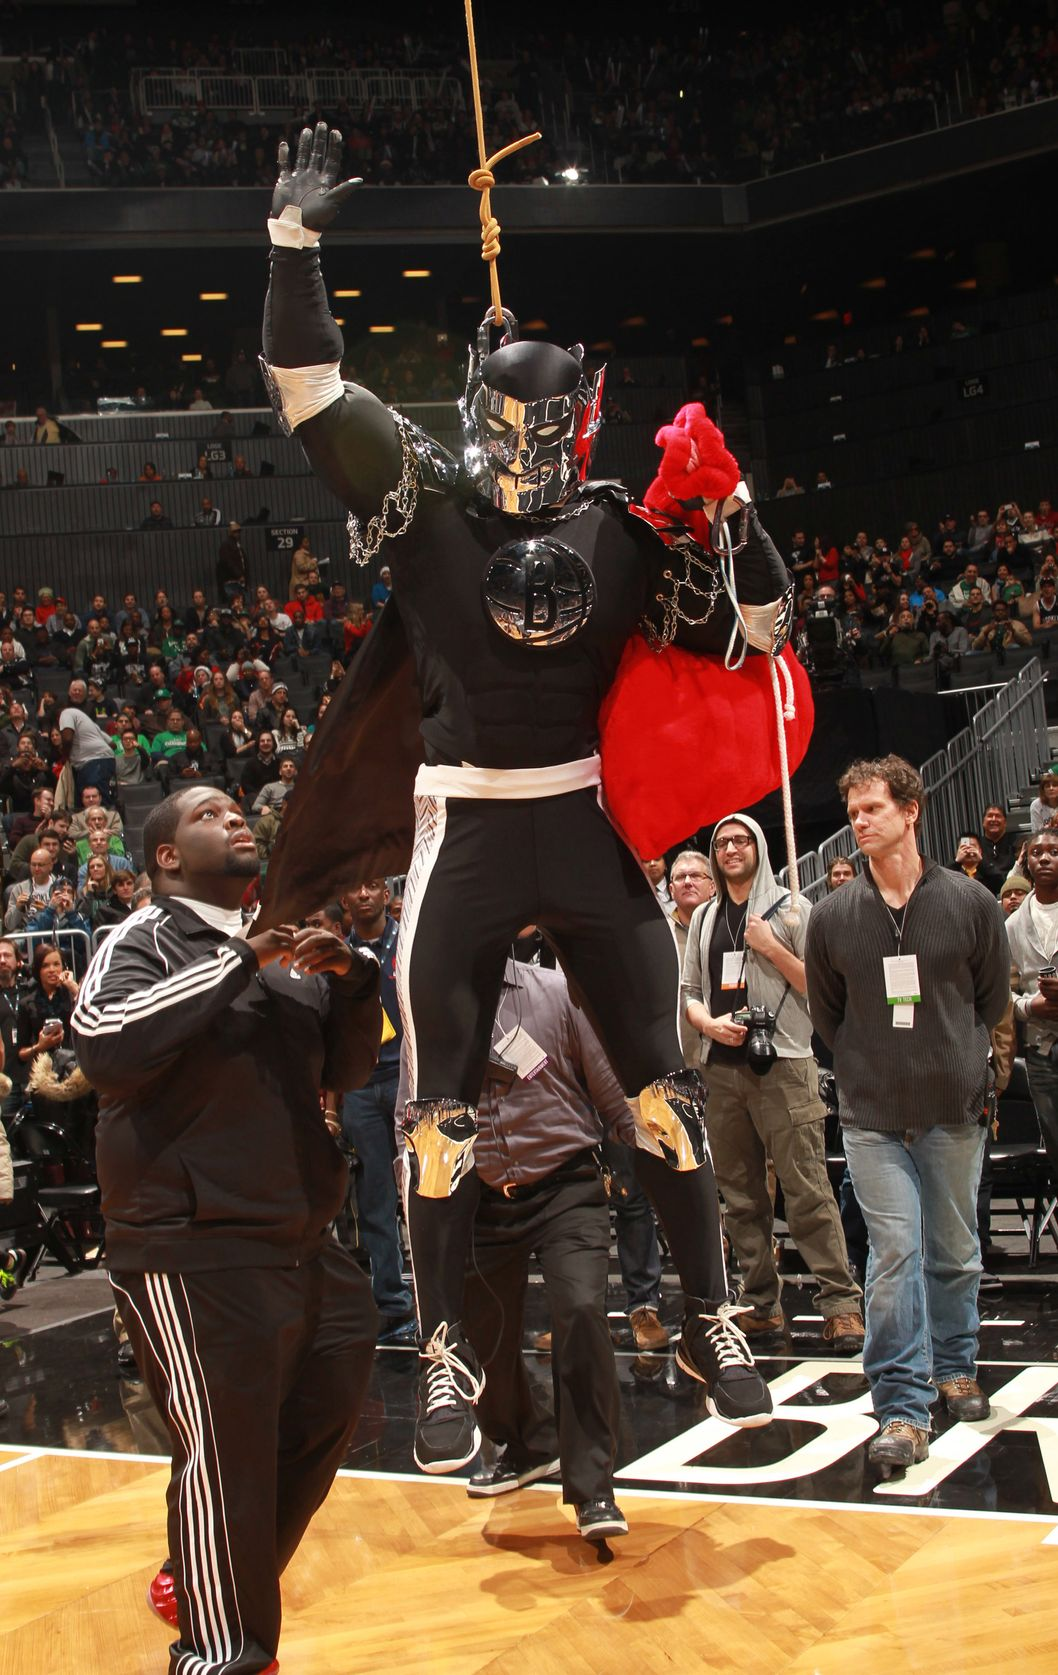 BROOKLYN, NY - DECEMBER 25:  The Brooklyn Knight of the Brooklyn Nets takes the court before the game against the Boston Celtics on December 25, 2012 at the Barclays Center in Brooklyn, New York. NOTE TO USER: User expressly acknowledges and agrees that, by downloading and or using this photograph, User is consenting to the terms and conditions of the Getty Images License Agreement. Mandatory Copyright Notice: Copyright 2012 NBAE (Photo by Ray Amati/NBAE via Getty Images)